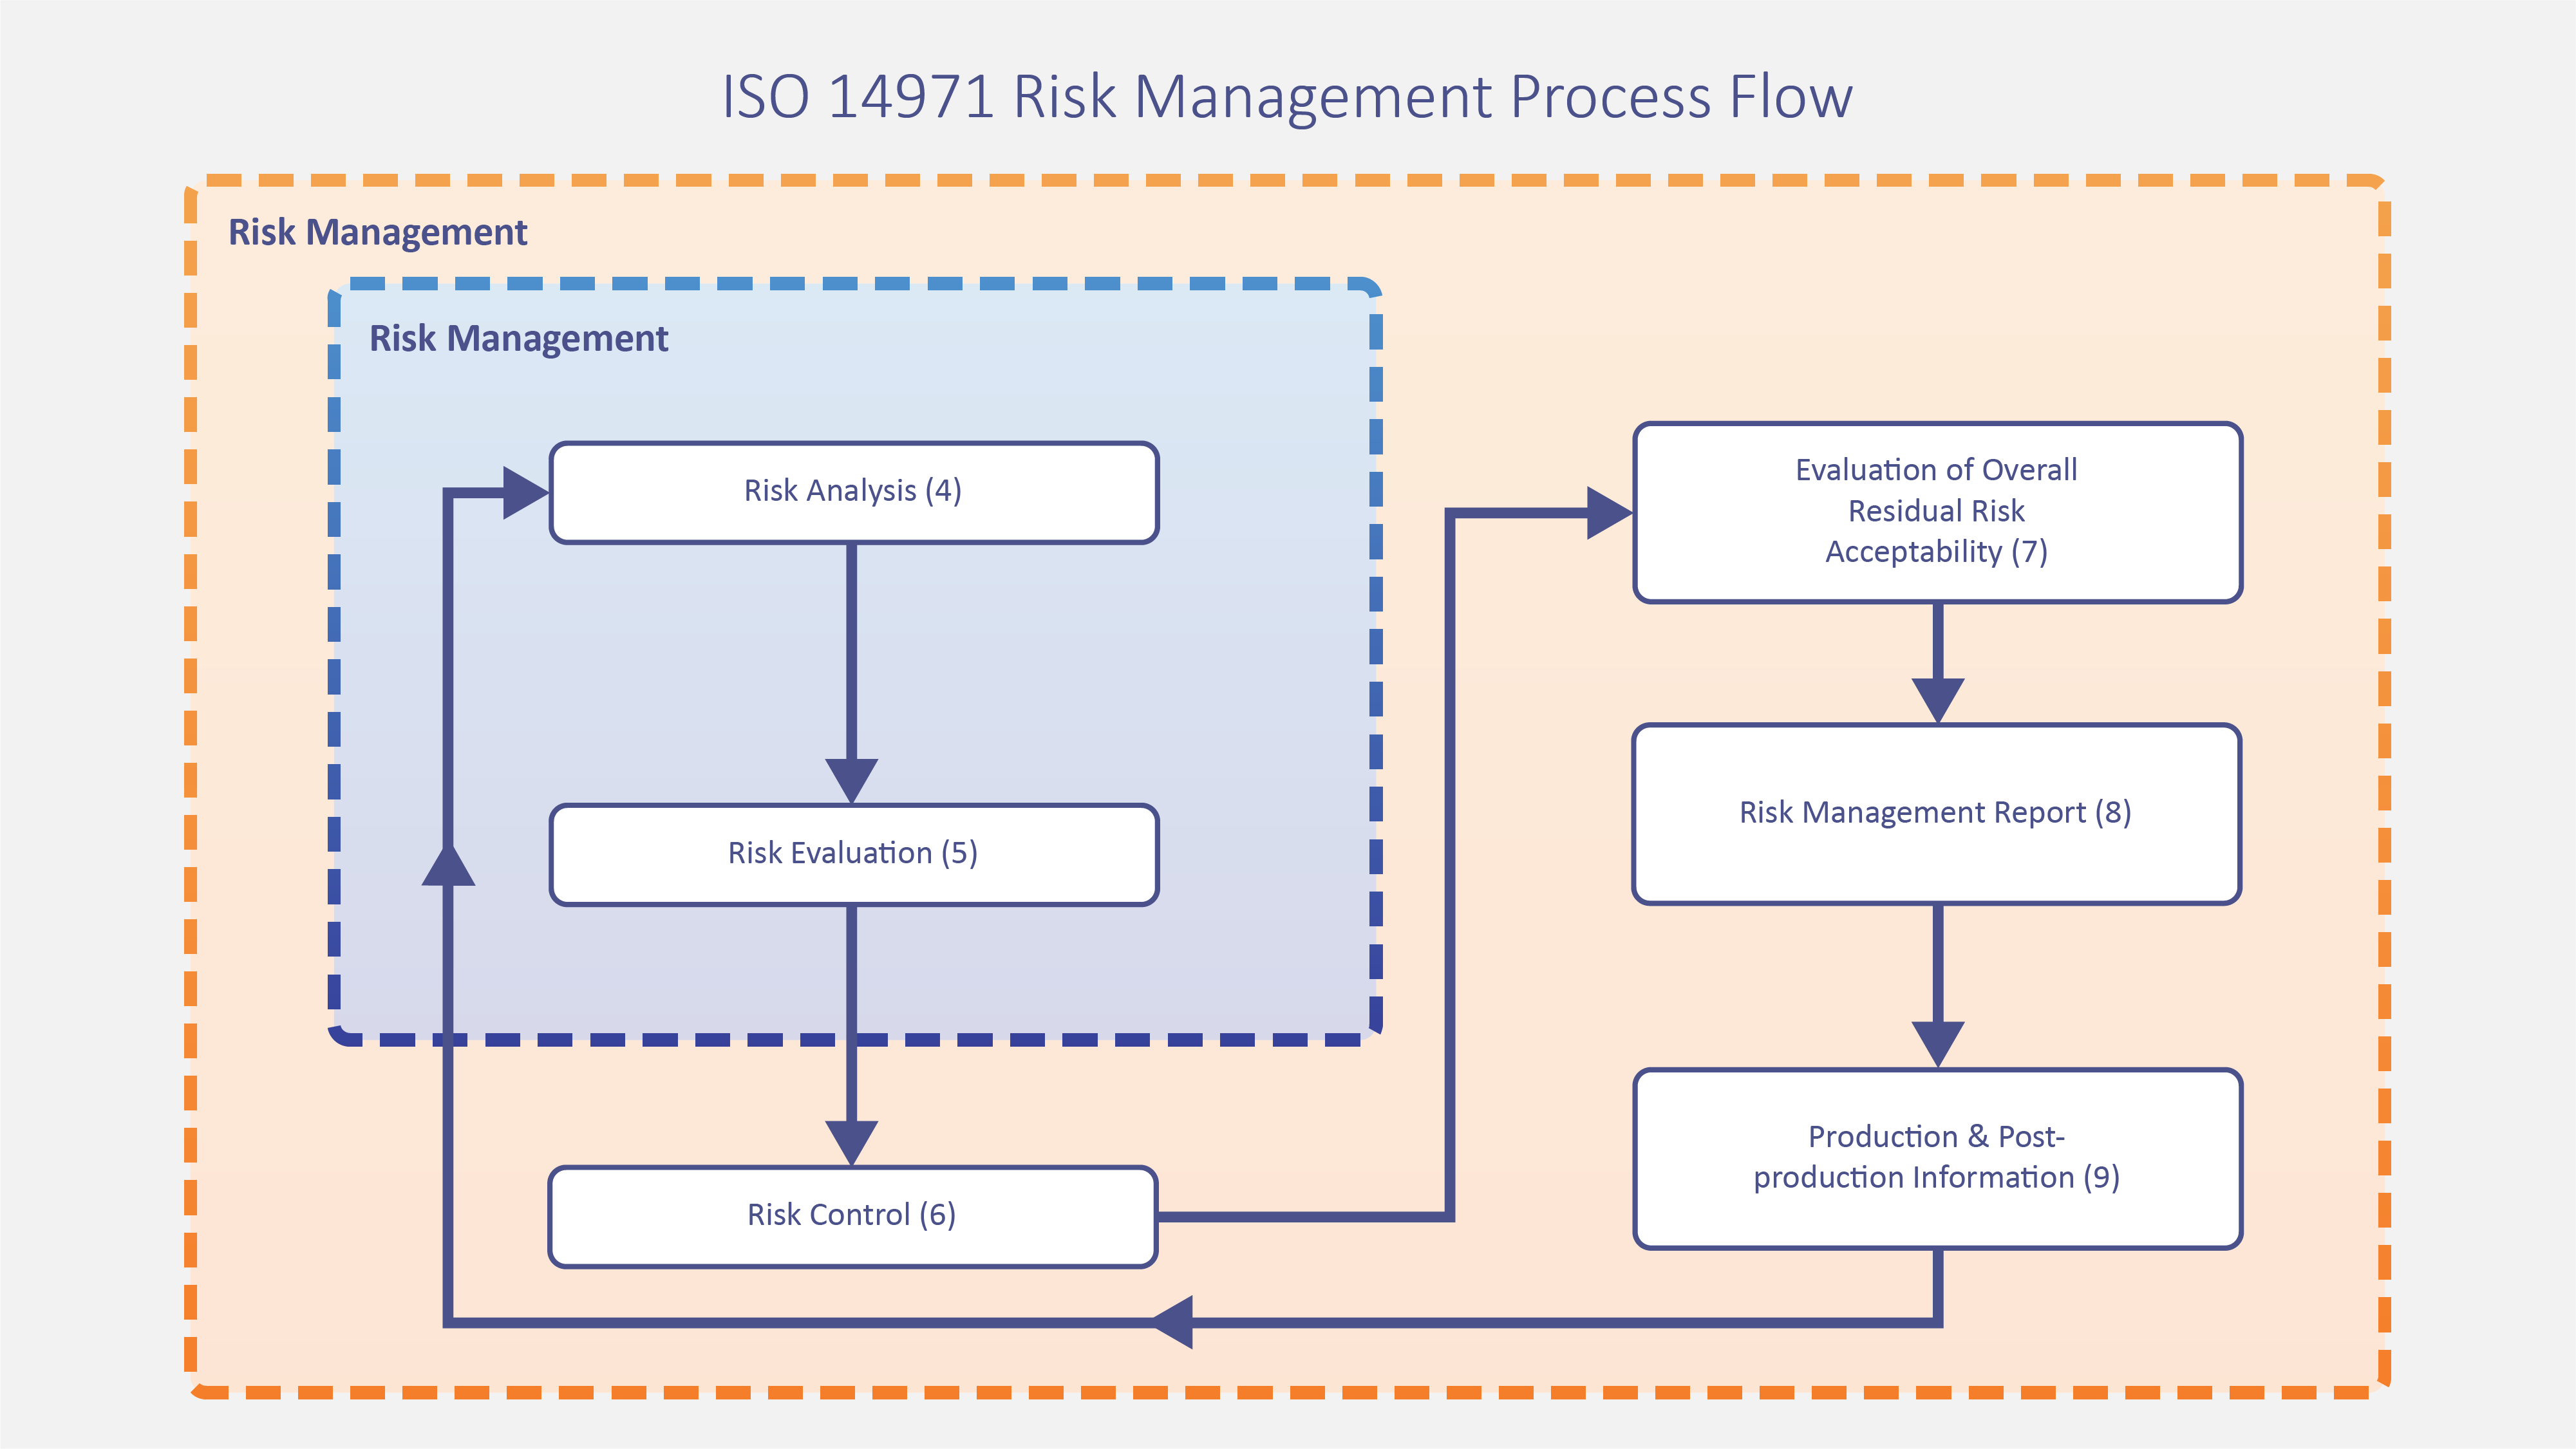 Good Laboratory Practice Glp Qualsys Process Flow Diagram Glass Production Managing Risk For Iso 14971